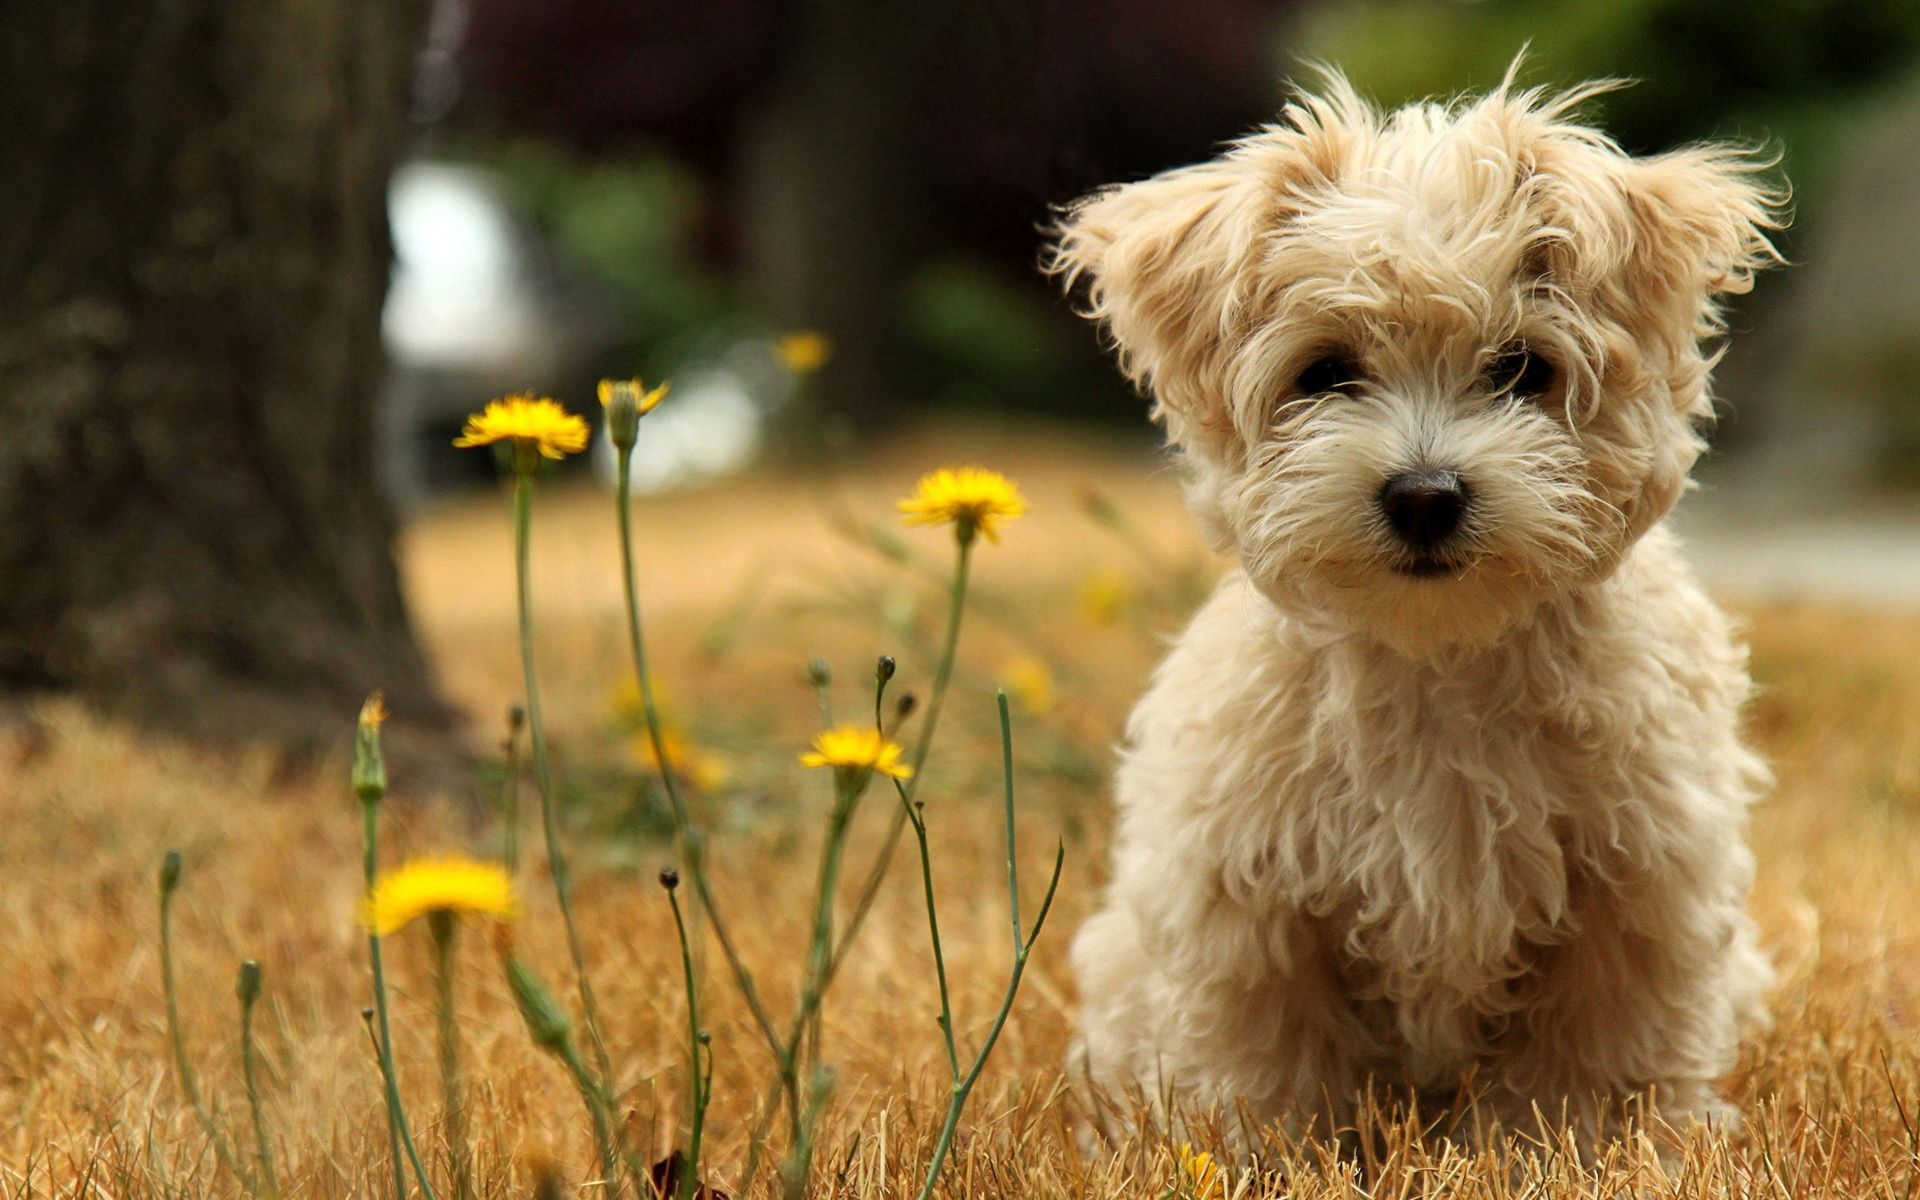 118535 download wallpaper Animals, Dog, Puppy, Grass, Flower screensavers and pictures for free